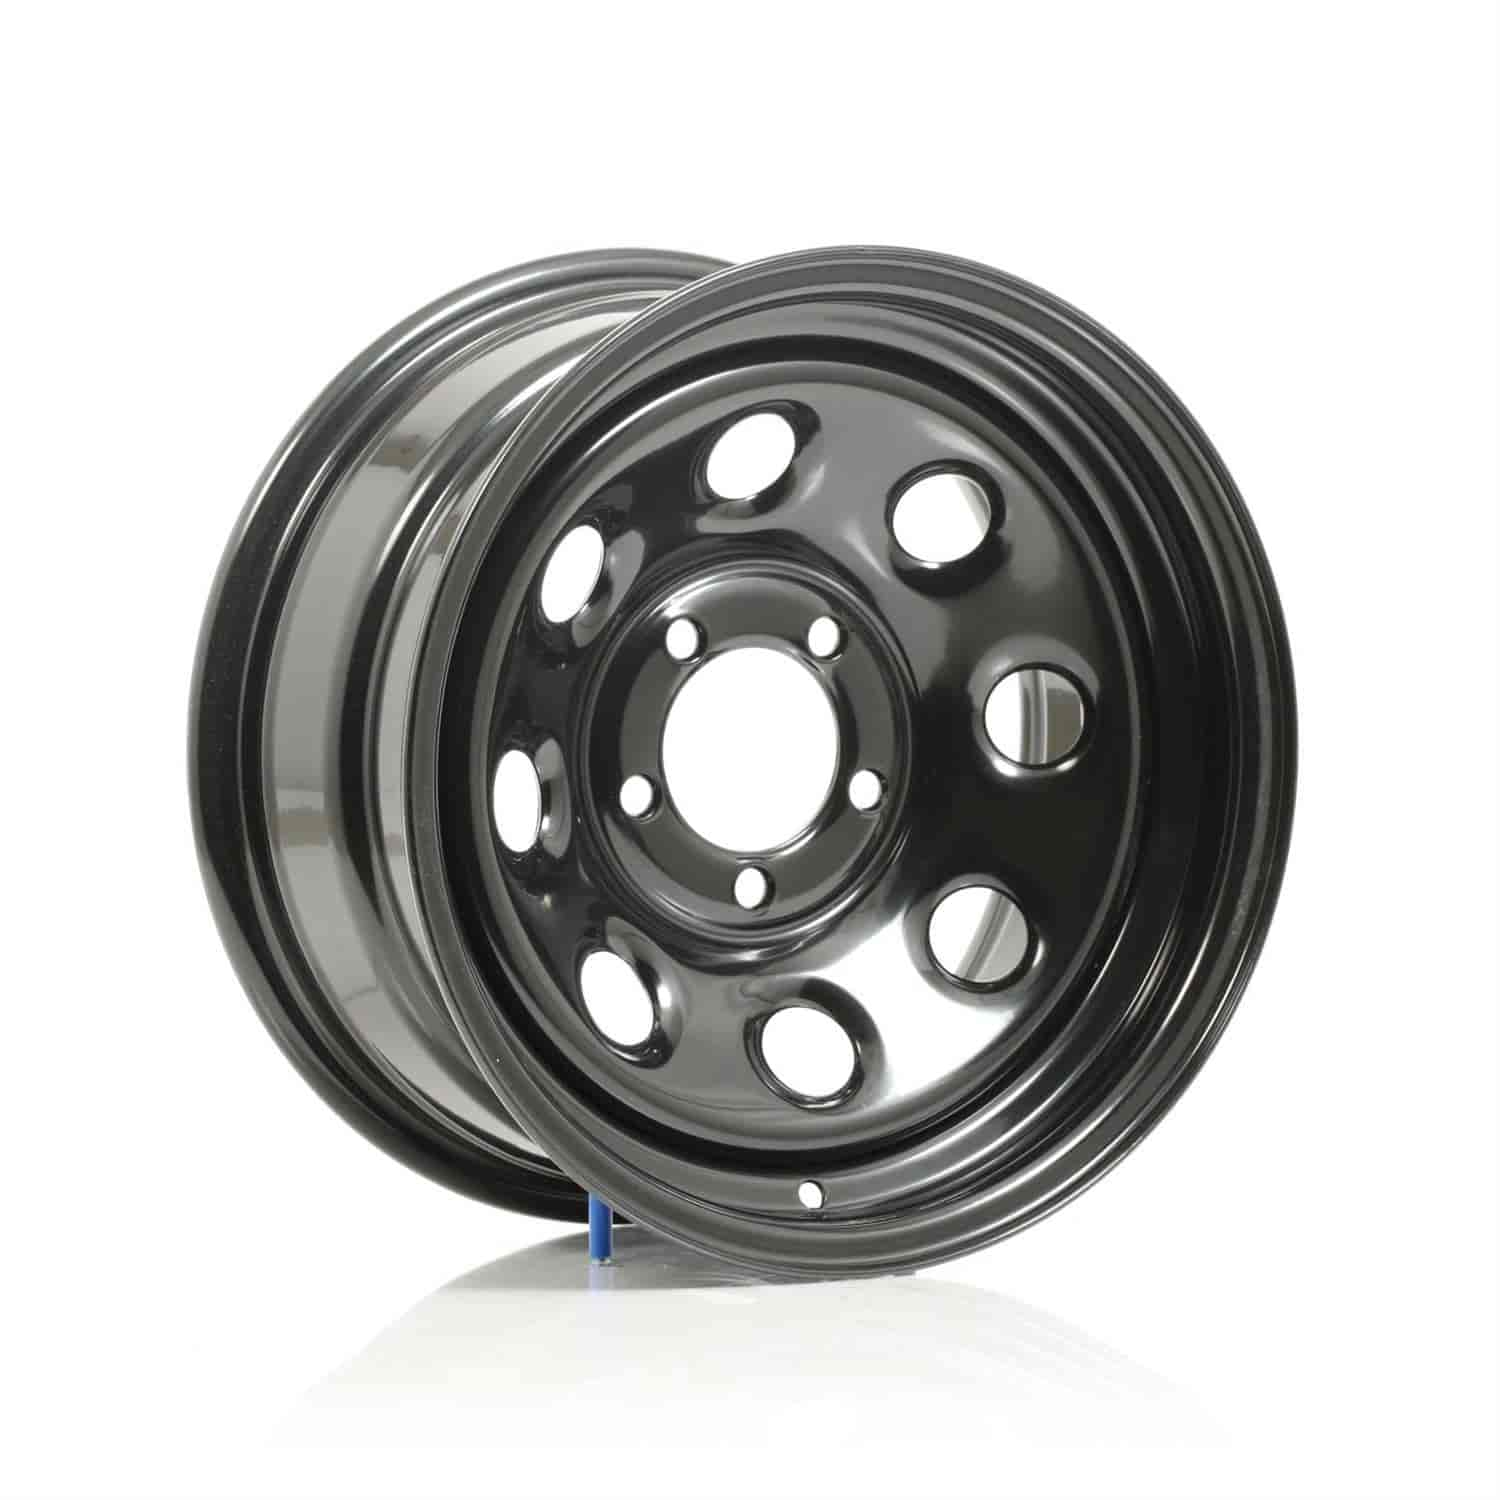 Cragar 3975260 - Cragar Black Soft 8 Wheels